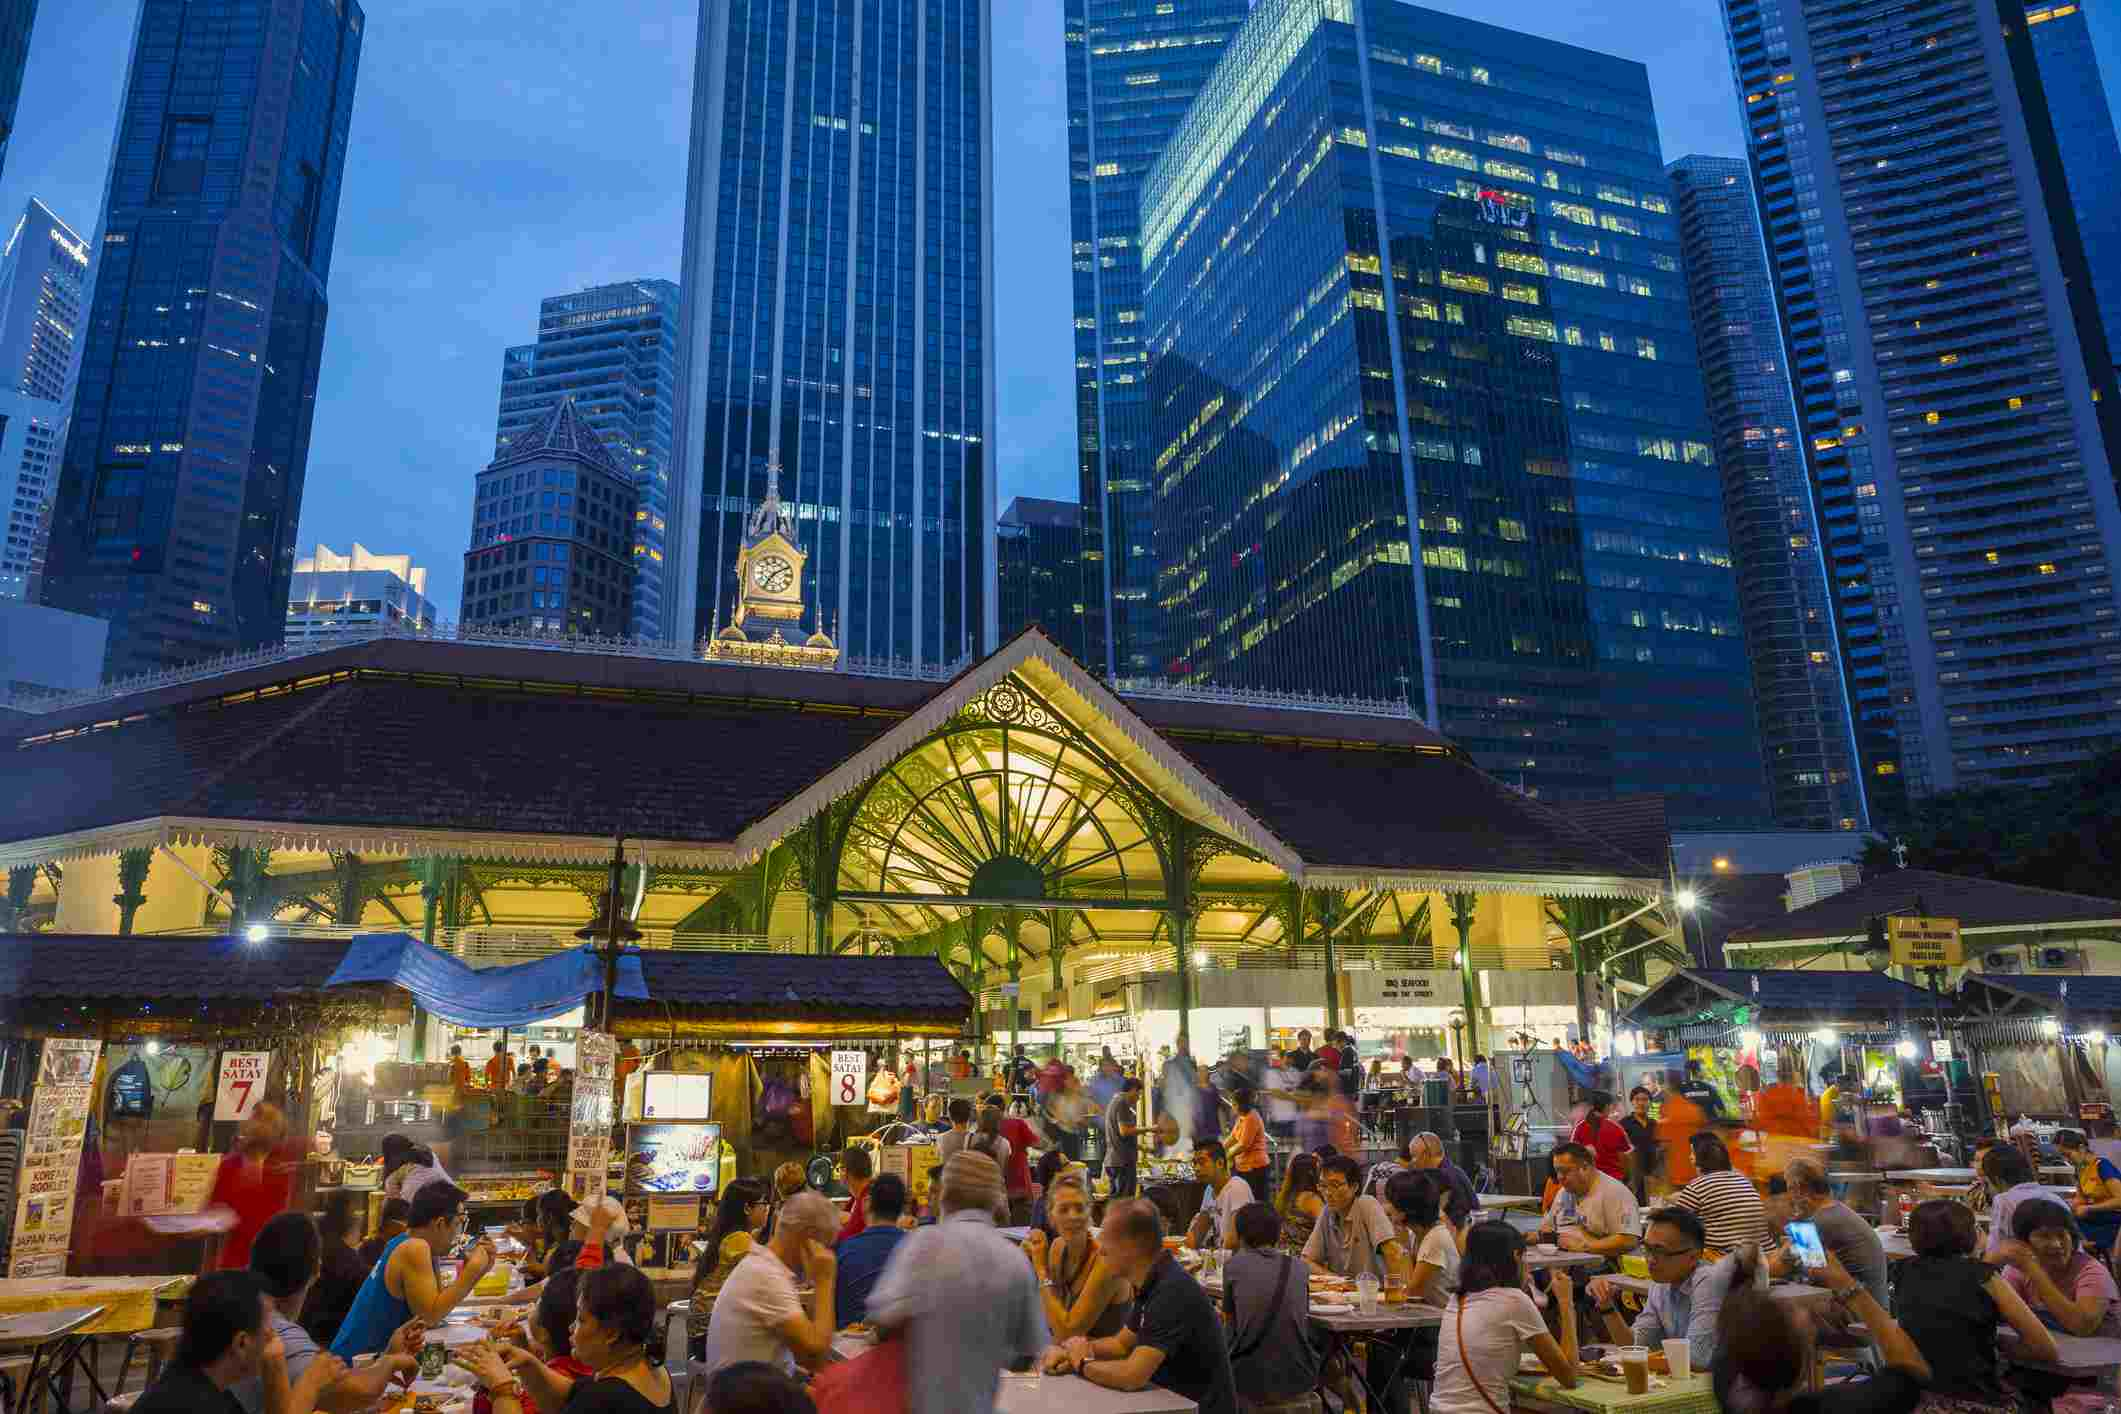 people eating outside on picnic tables at a hawker center at night